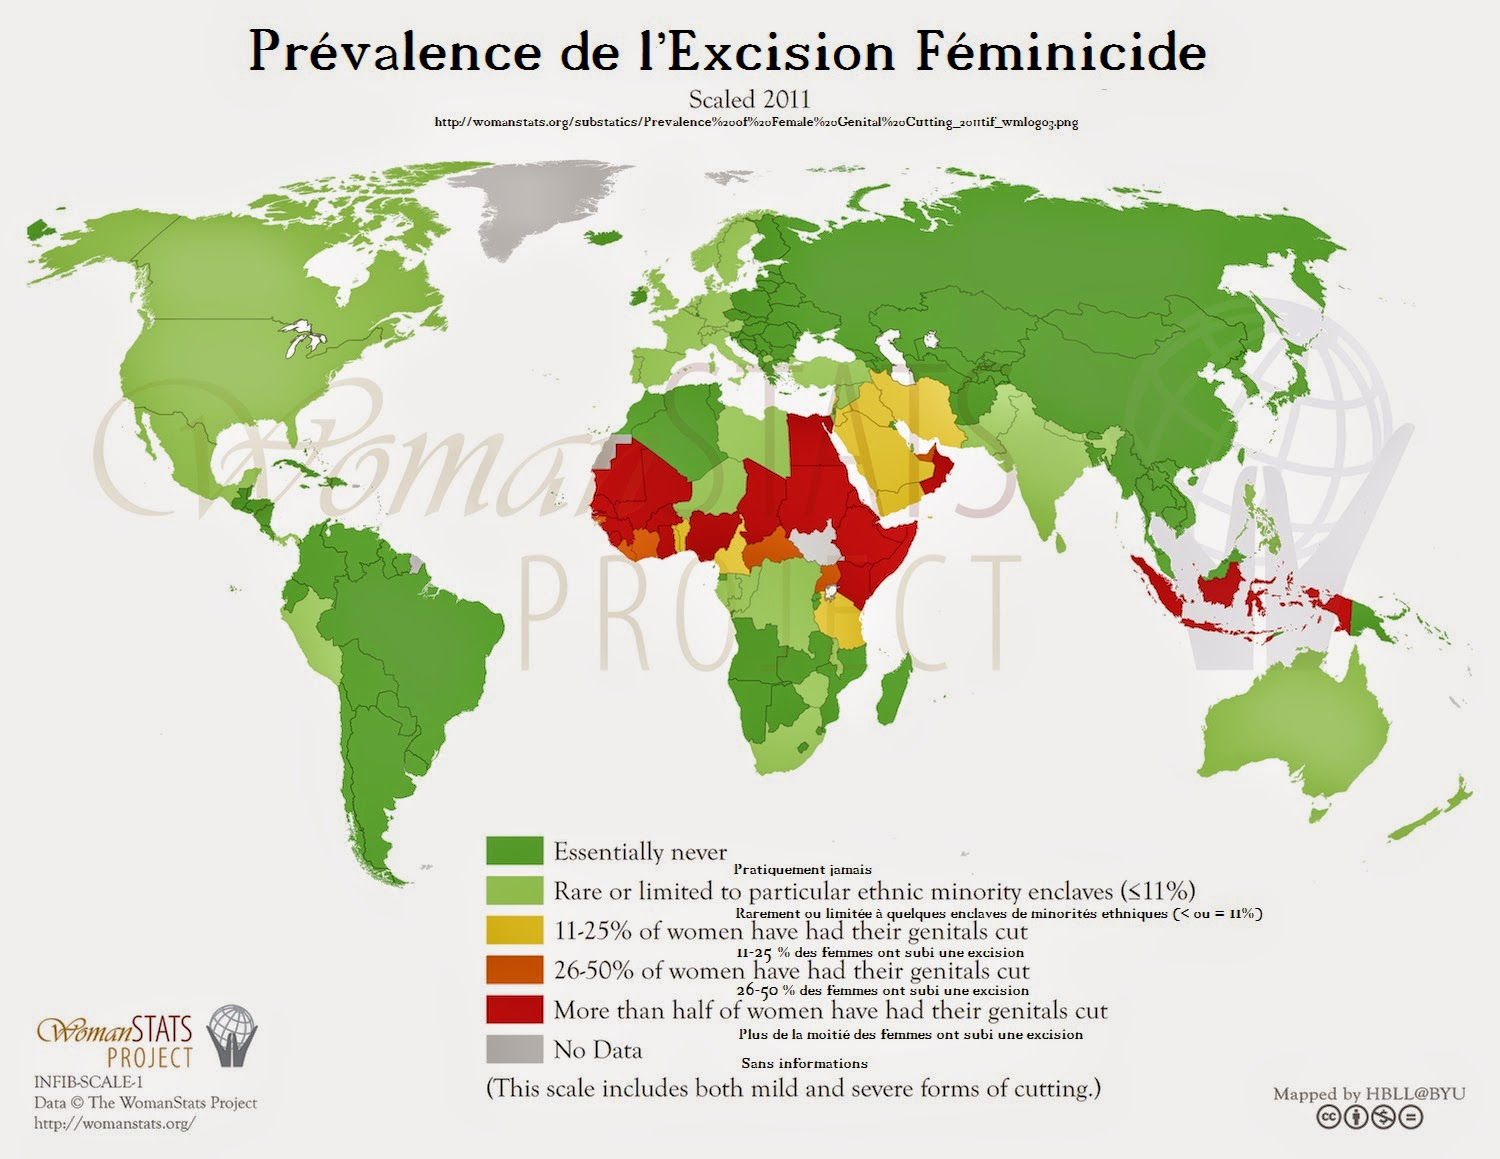 Censure Prevalence+of+excision+f%C3%A9minicide_2011tif_wmlogo3